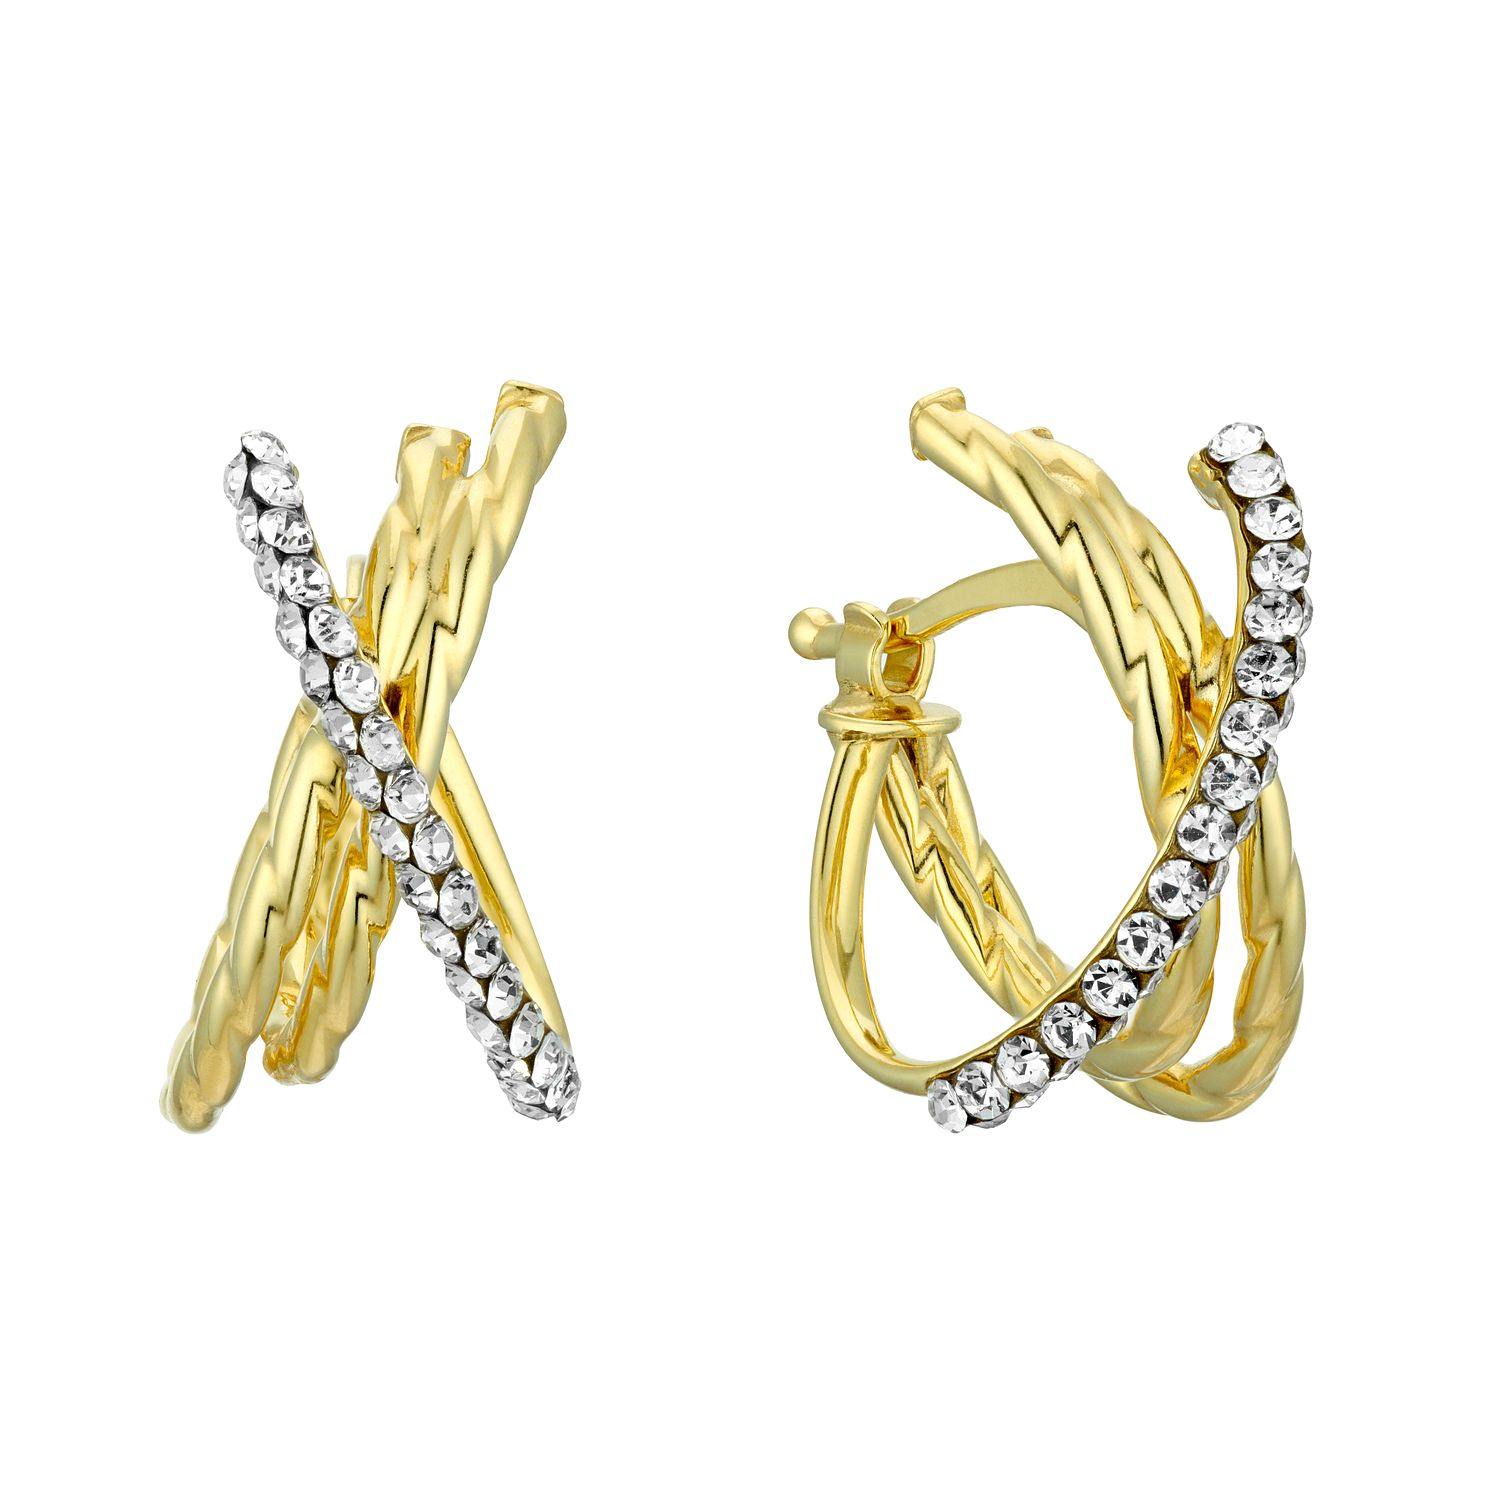 9ct Gold Swarovski Crystal Crossover 8mm Hoop Earrings - Product number 4667859